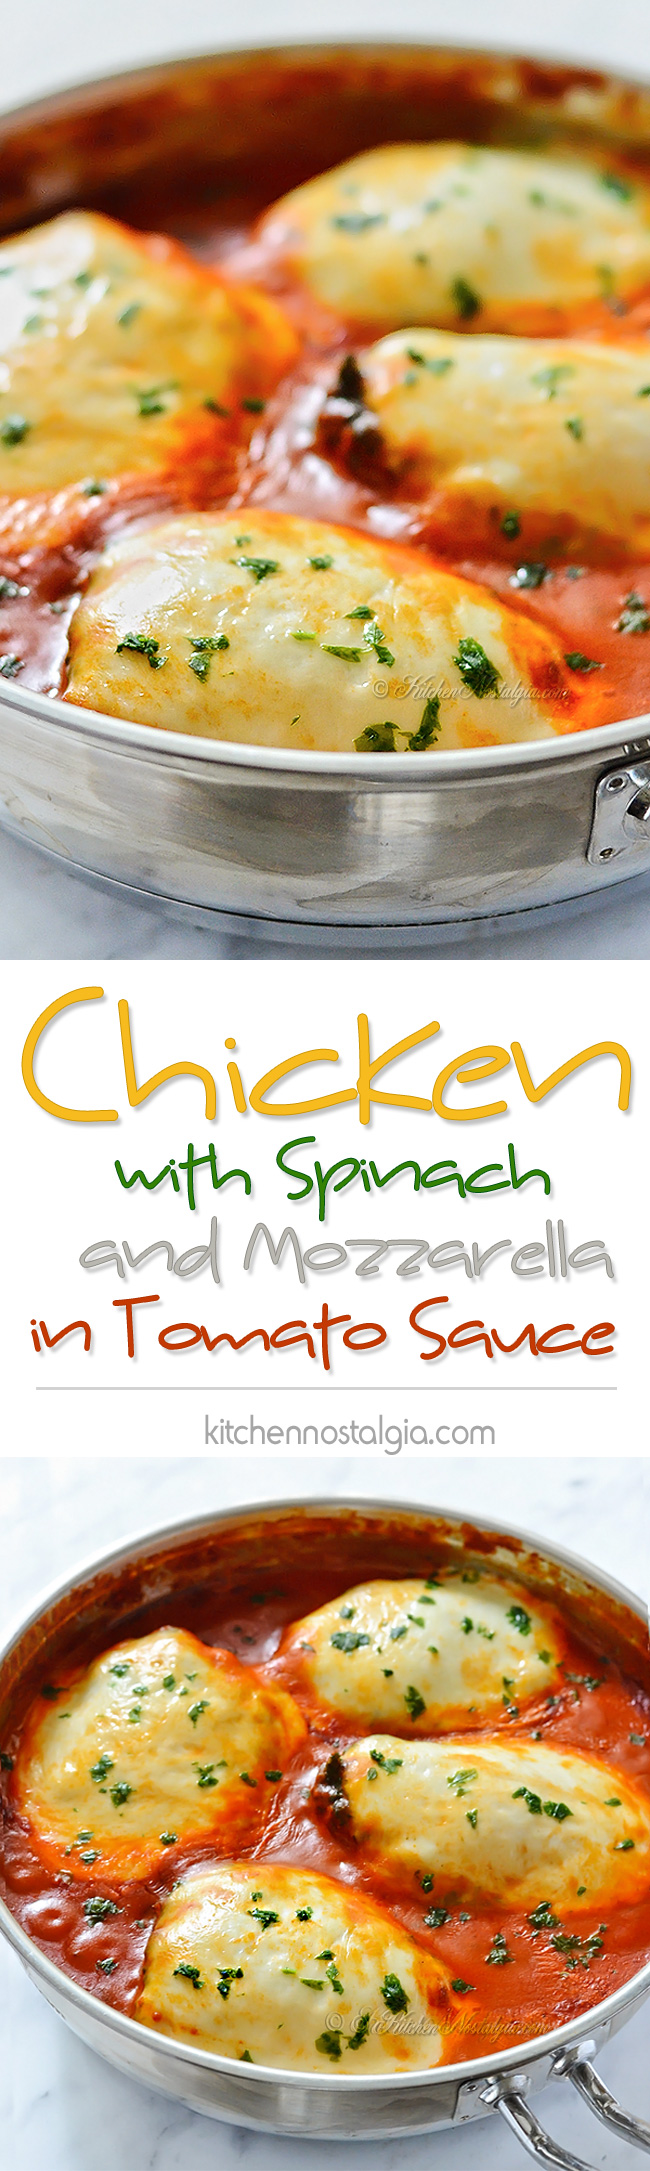 Chicken with Spinach and Mozzarella in Tomato Sauce - kitchennostalgia.com